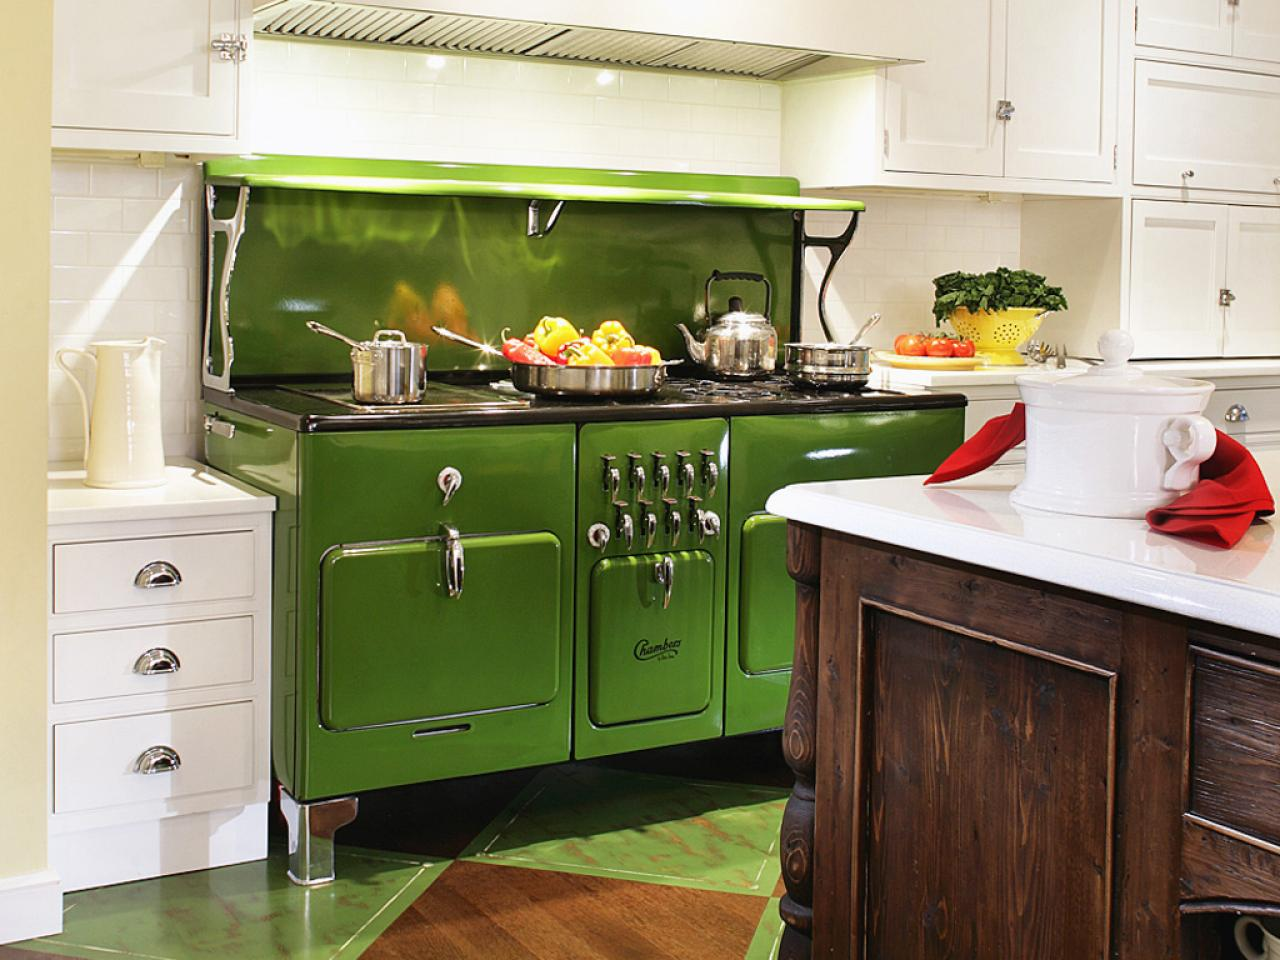 Cool Kitchen Appliances How Much For A Remodel Eaton Rapids Joe Fashion Is Form Of Ugly